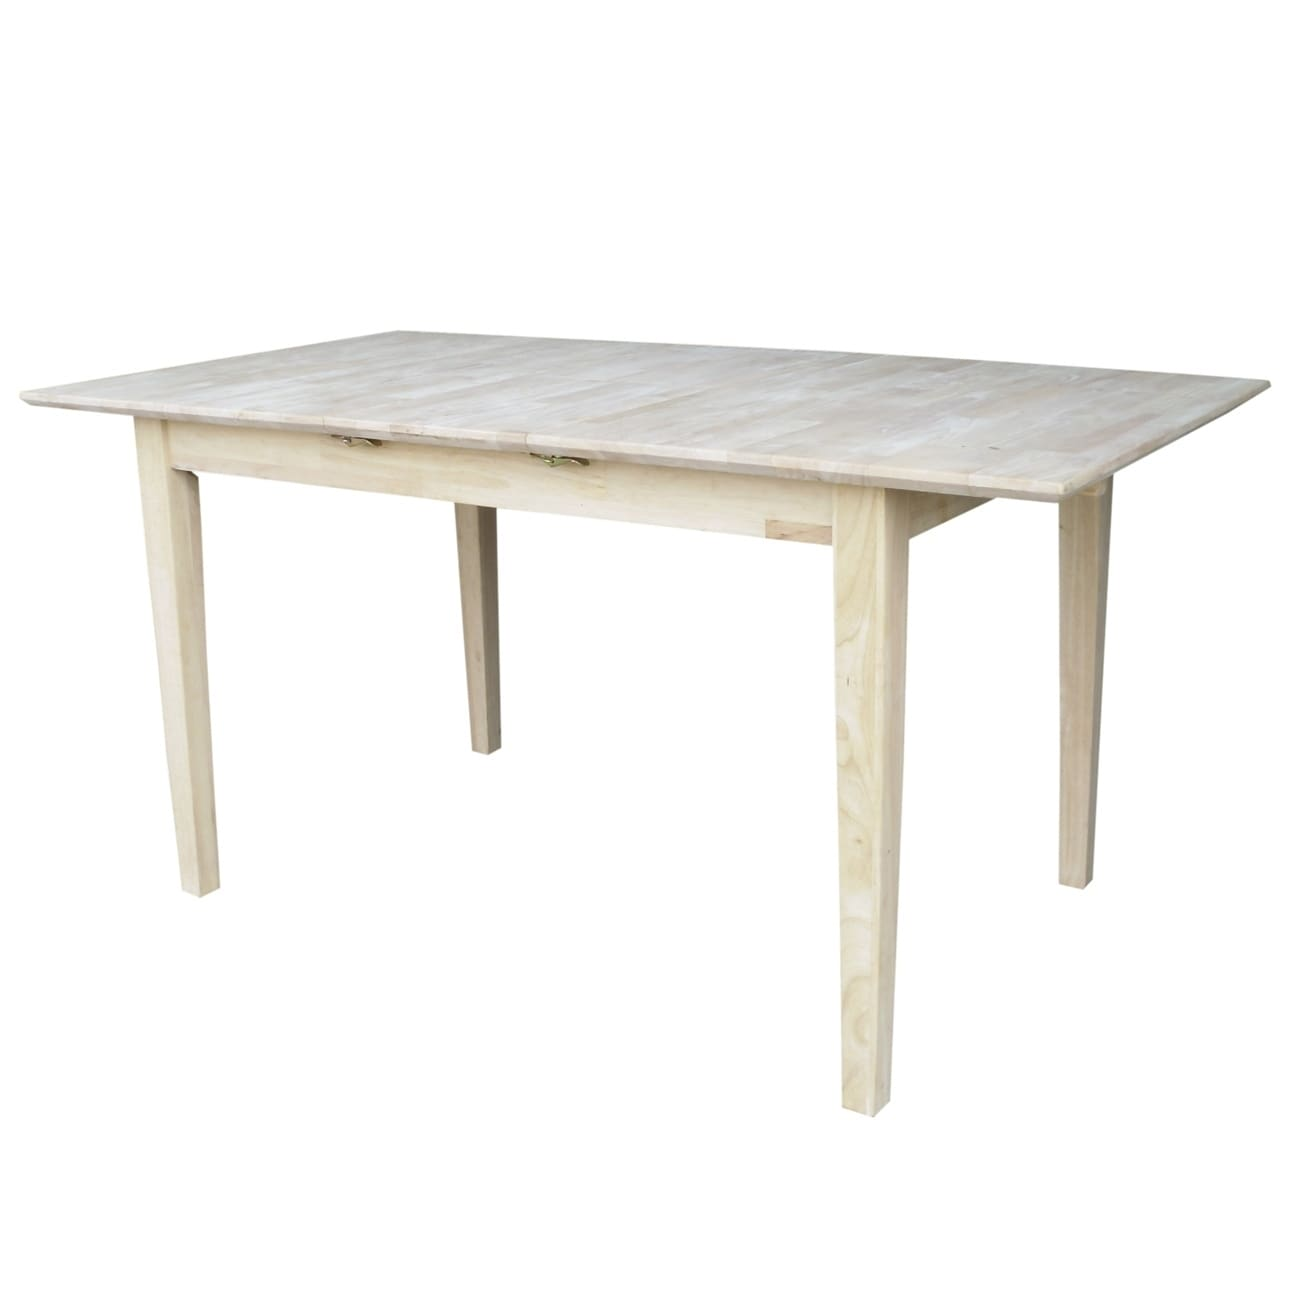 International Concepts 32-inch Wide Unfinished Shaker Style Parawood ...